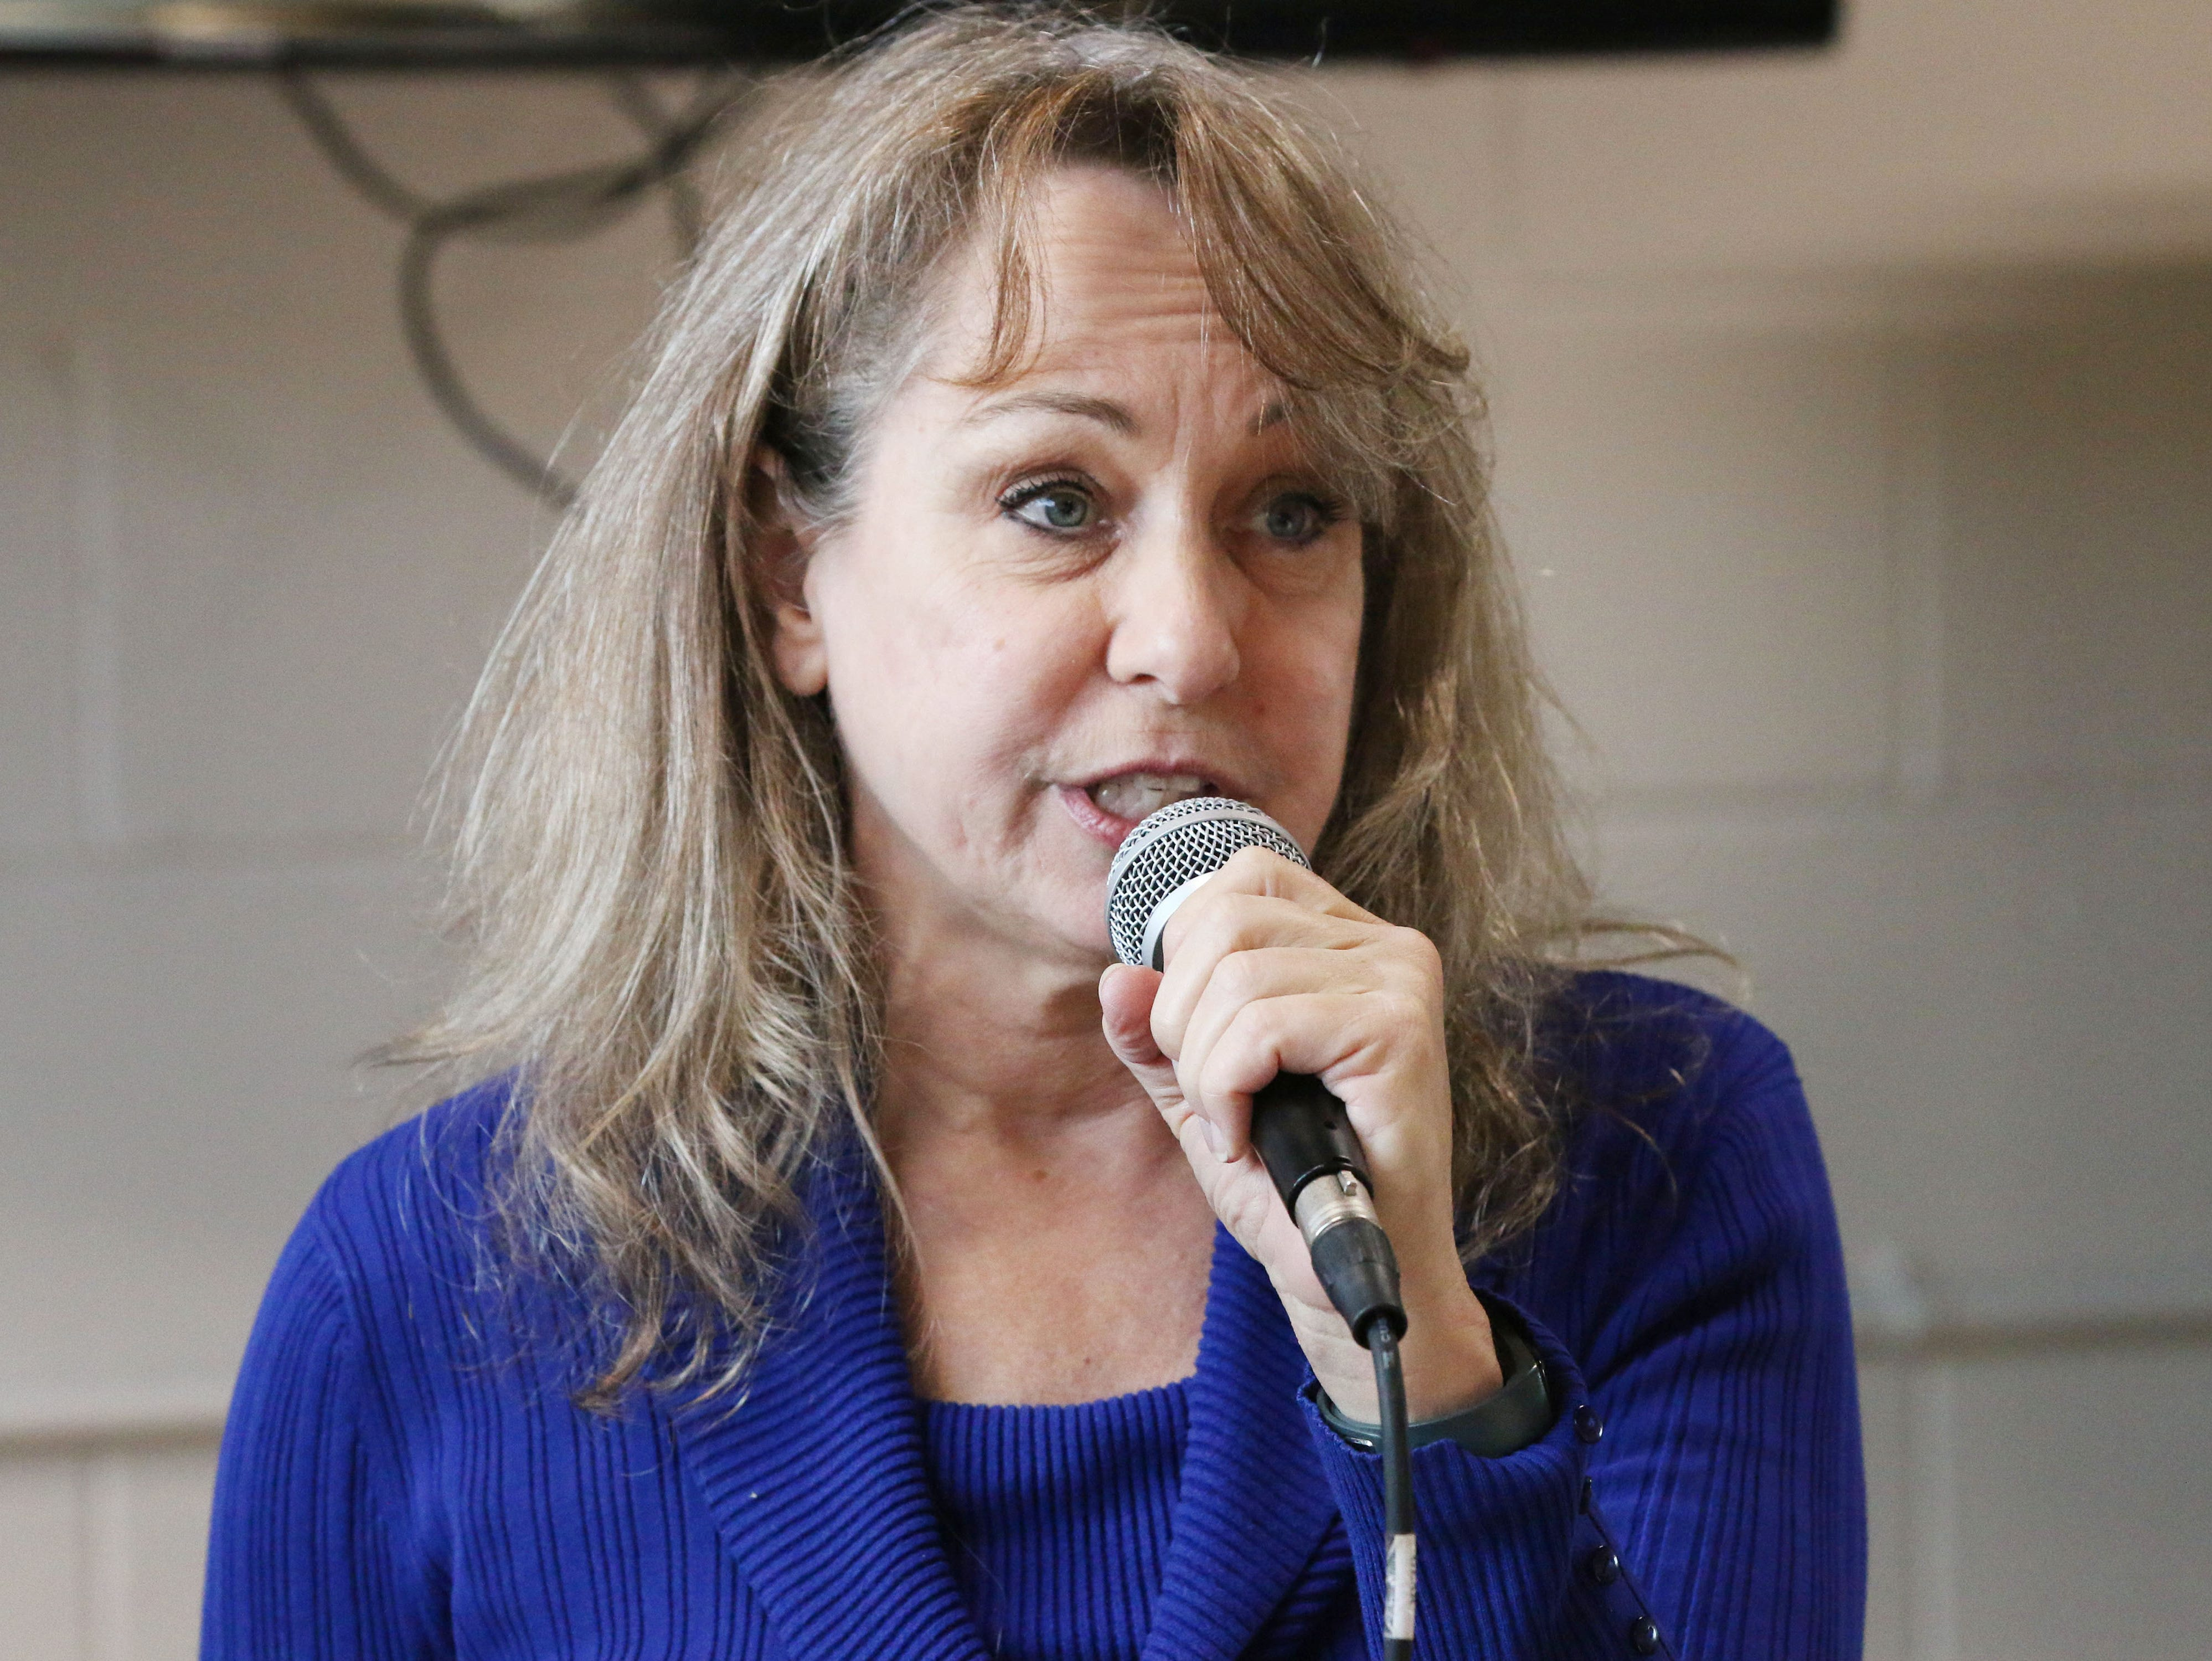 27th District Democratic Candidate Nanette Bulebosh speaks to the crowd during a Democratic campaign stop at The Hub coffee shop, Saturday, November 3, 2018, in Plymouth, Wis. Bulebosh is running for the 27th District.